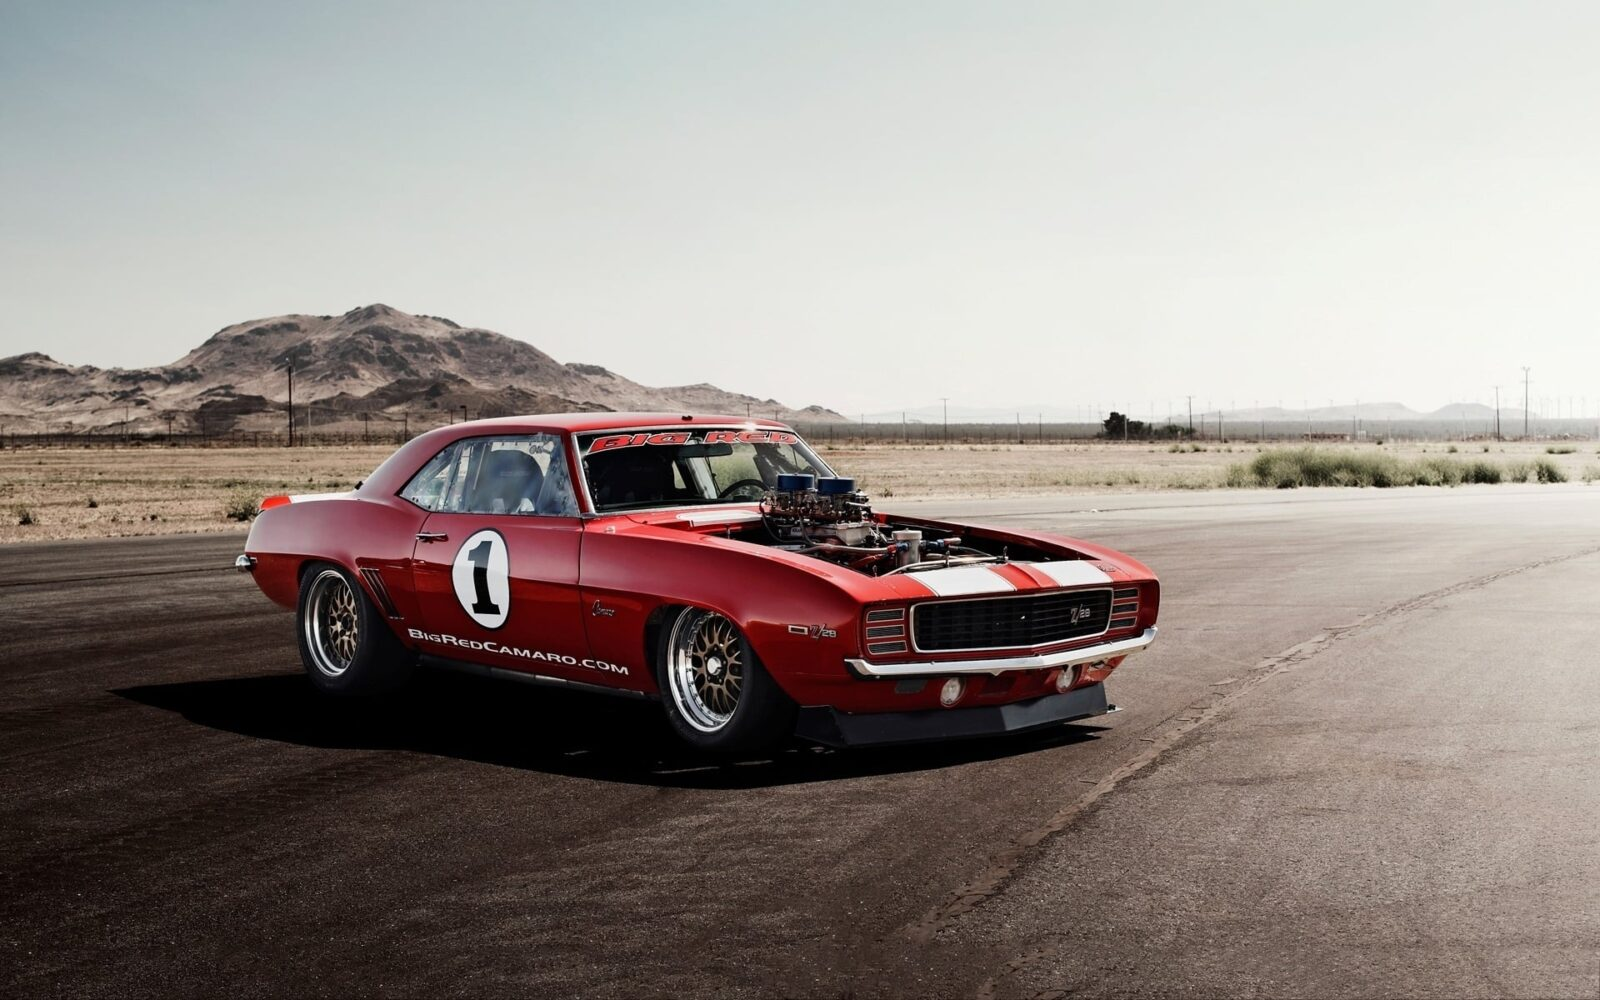 Old Camaro Wallpapers Group (72 )